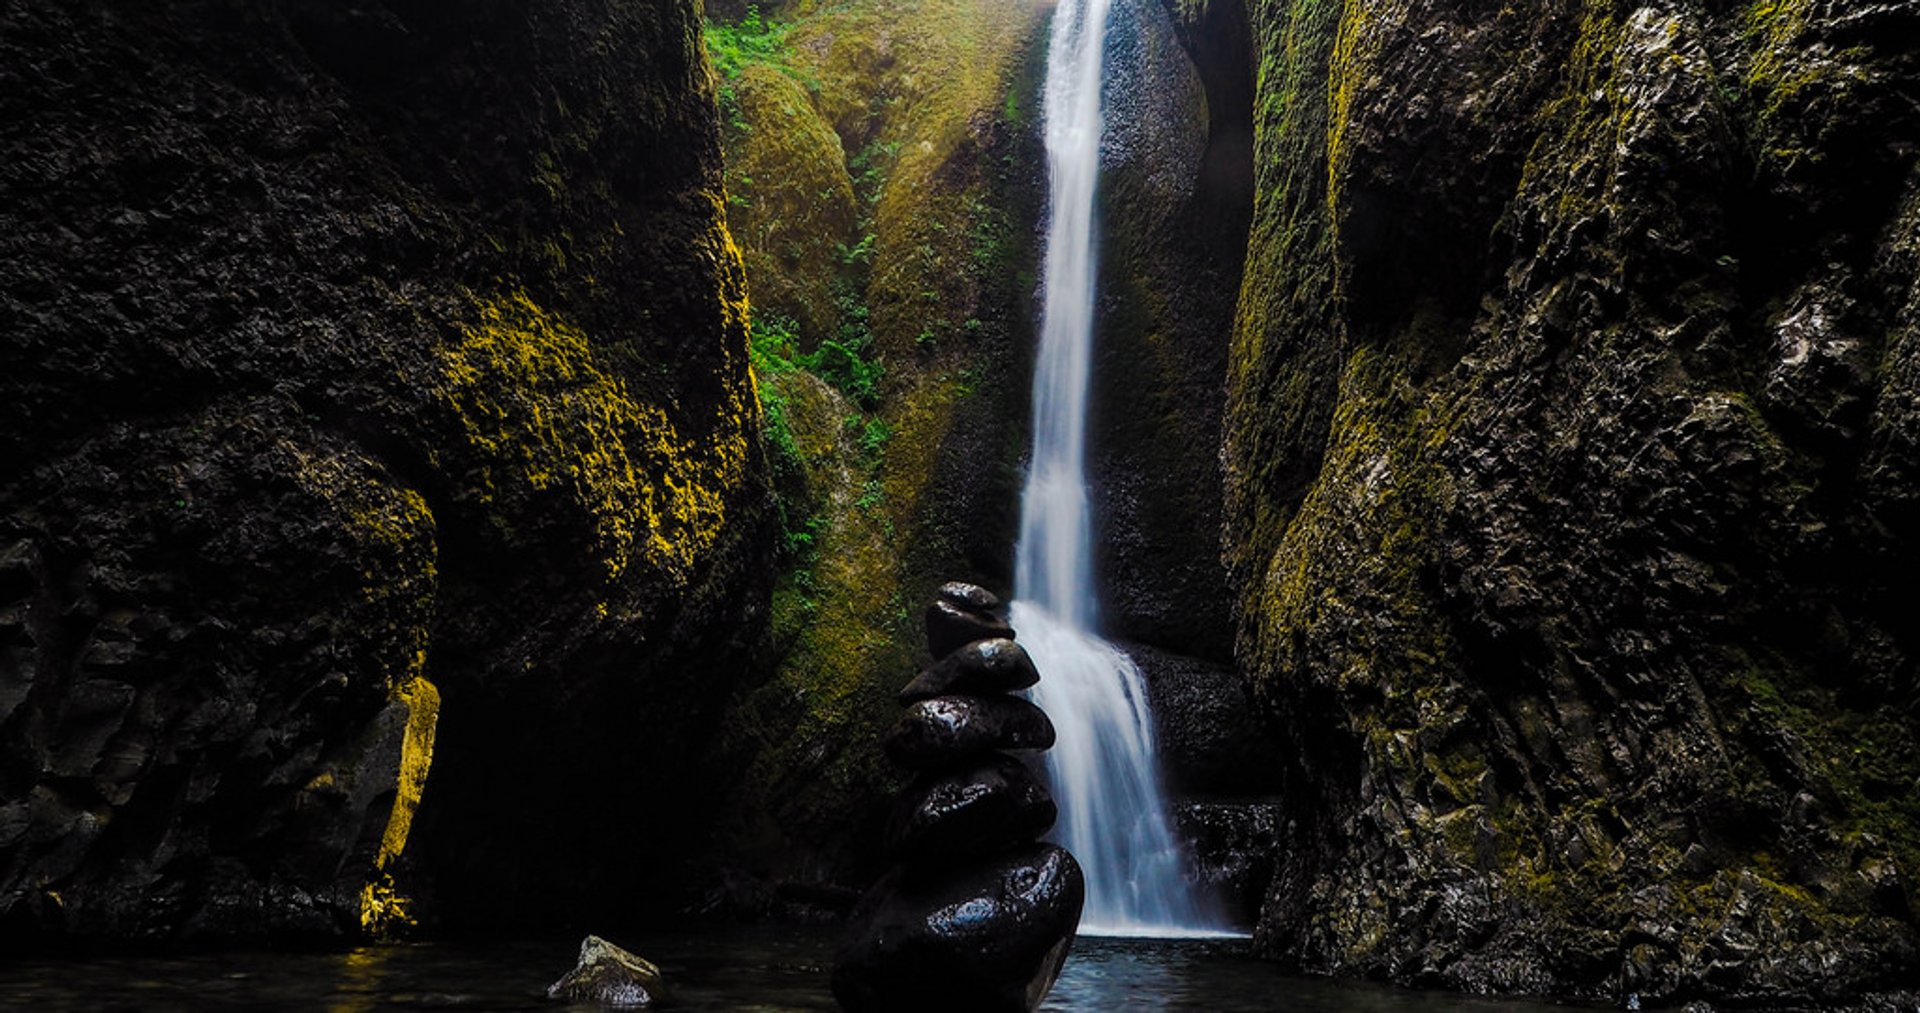 Oneonta Gorge in Portland 2019 - Best Time